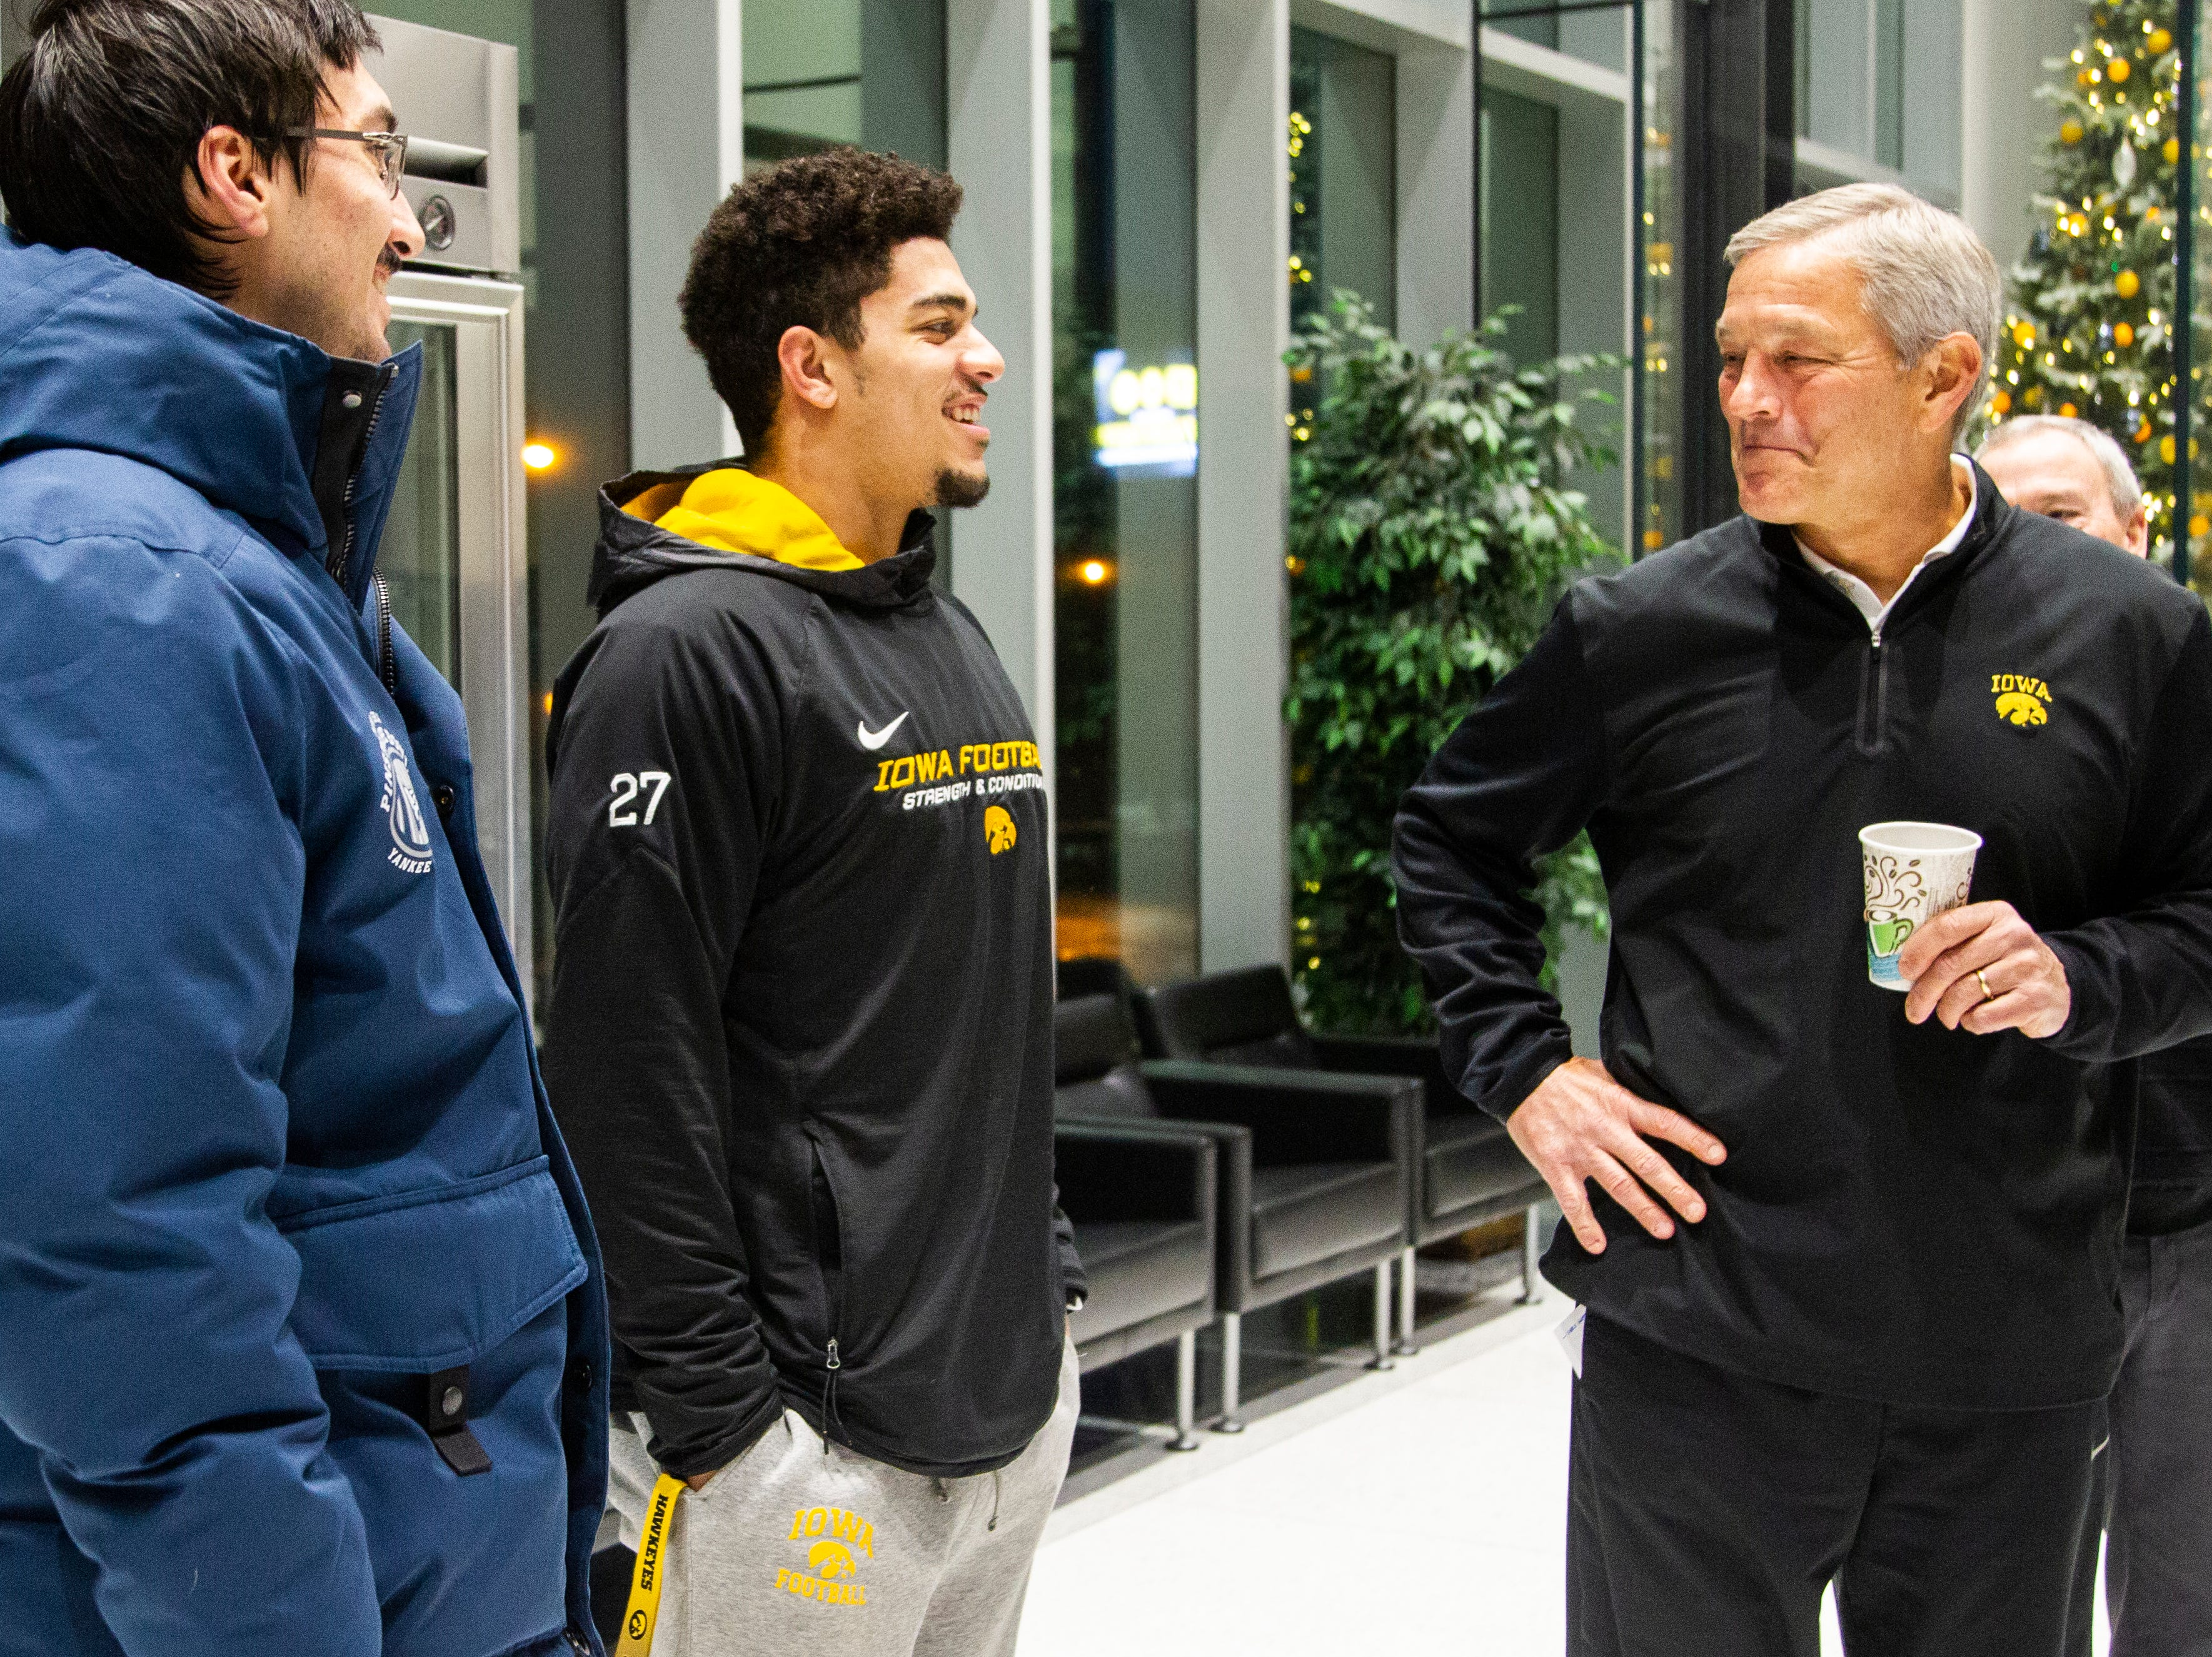 Iowa football head coach Kirk Ferentz talks with Iowa defensive back Amani Hooker (center) and Iowa placekicker Miguel Recinos (left) during an Outback Bowl announcement press conference on Sunday, Dec. 2, 2018, at the Hansen Football Performance Center in Iowa City.